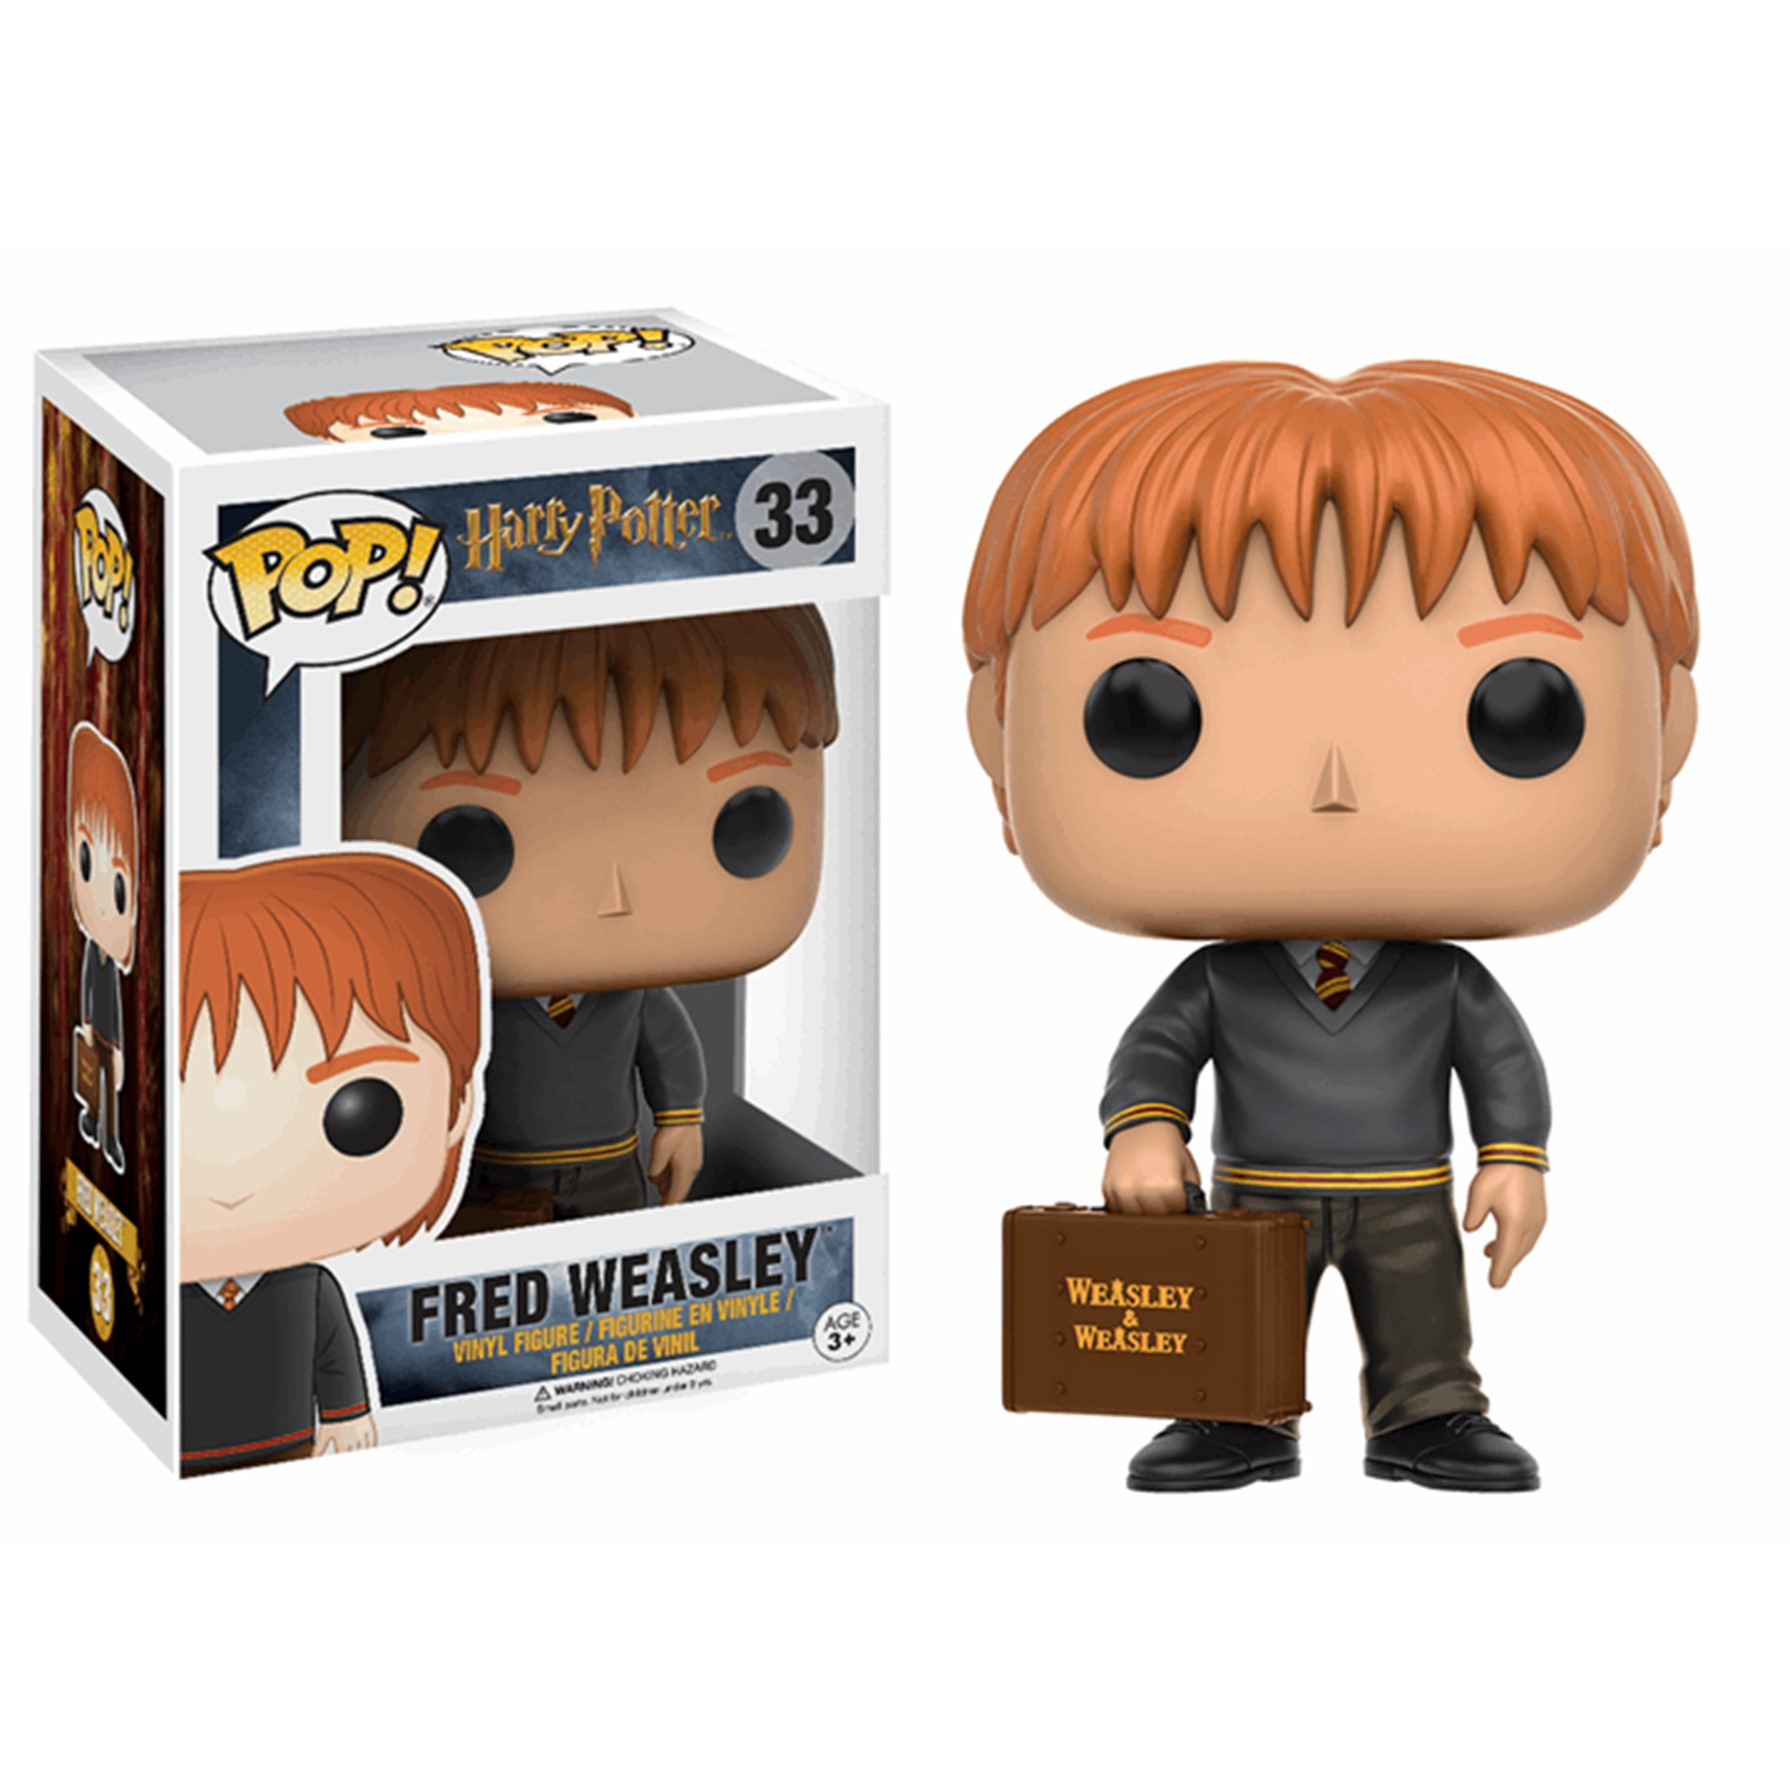 Funko Pop Fred Weasley Harry Potter